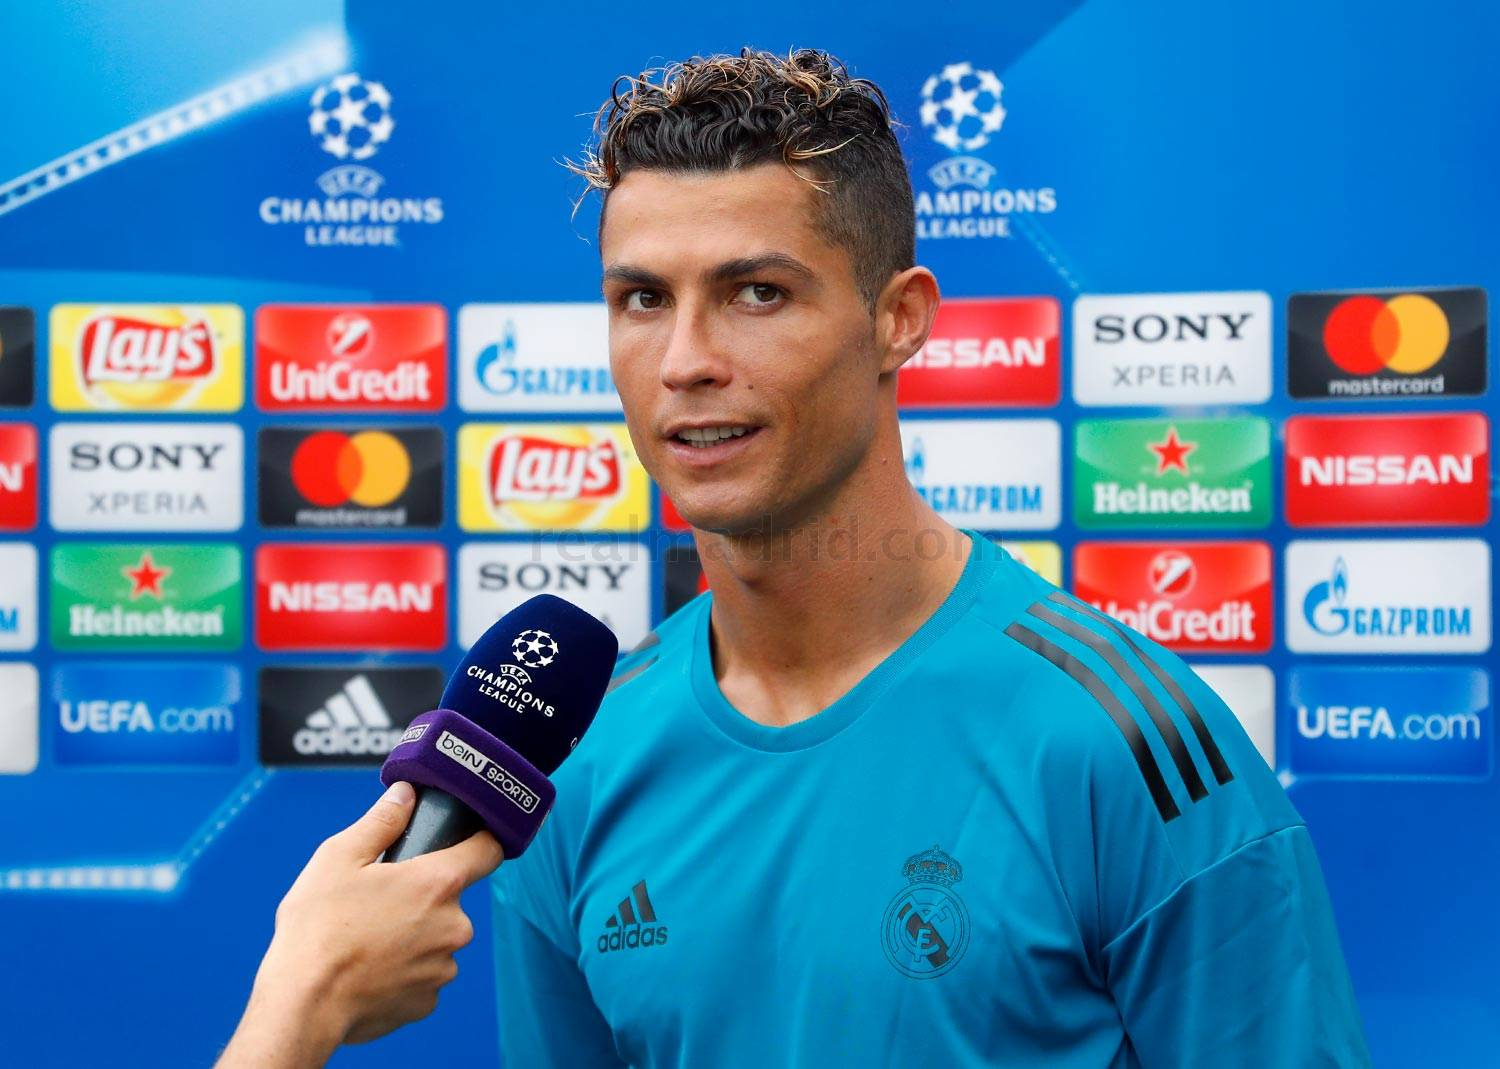 Real Madrid - Cristiano Ronaldo durante el Open Media Day 2018 - 22-05-2018